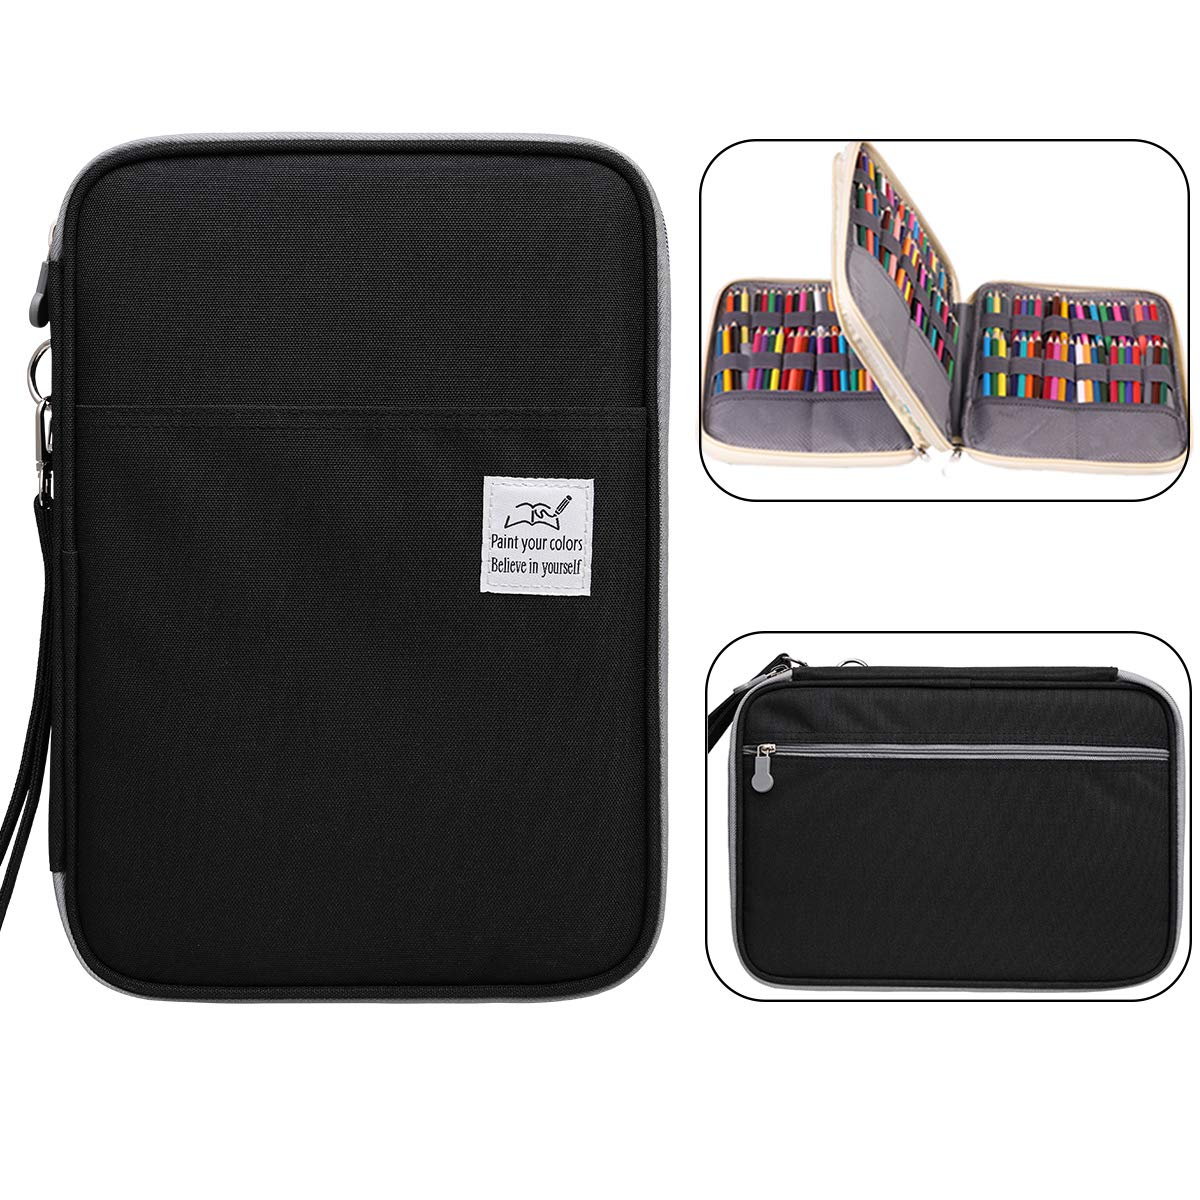 JAKAGO Max 192 Slots Colored Pencil Case Large Capacity Pen Organizer Bag for Watercolor Pencils, Markers, Gel Pens, Cosmetic Brush, Crochet Hooks, Great Gift for Student & Artist (Black)